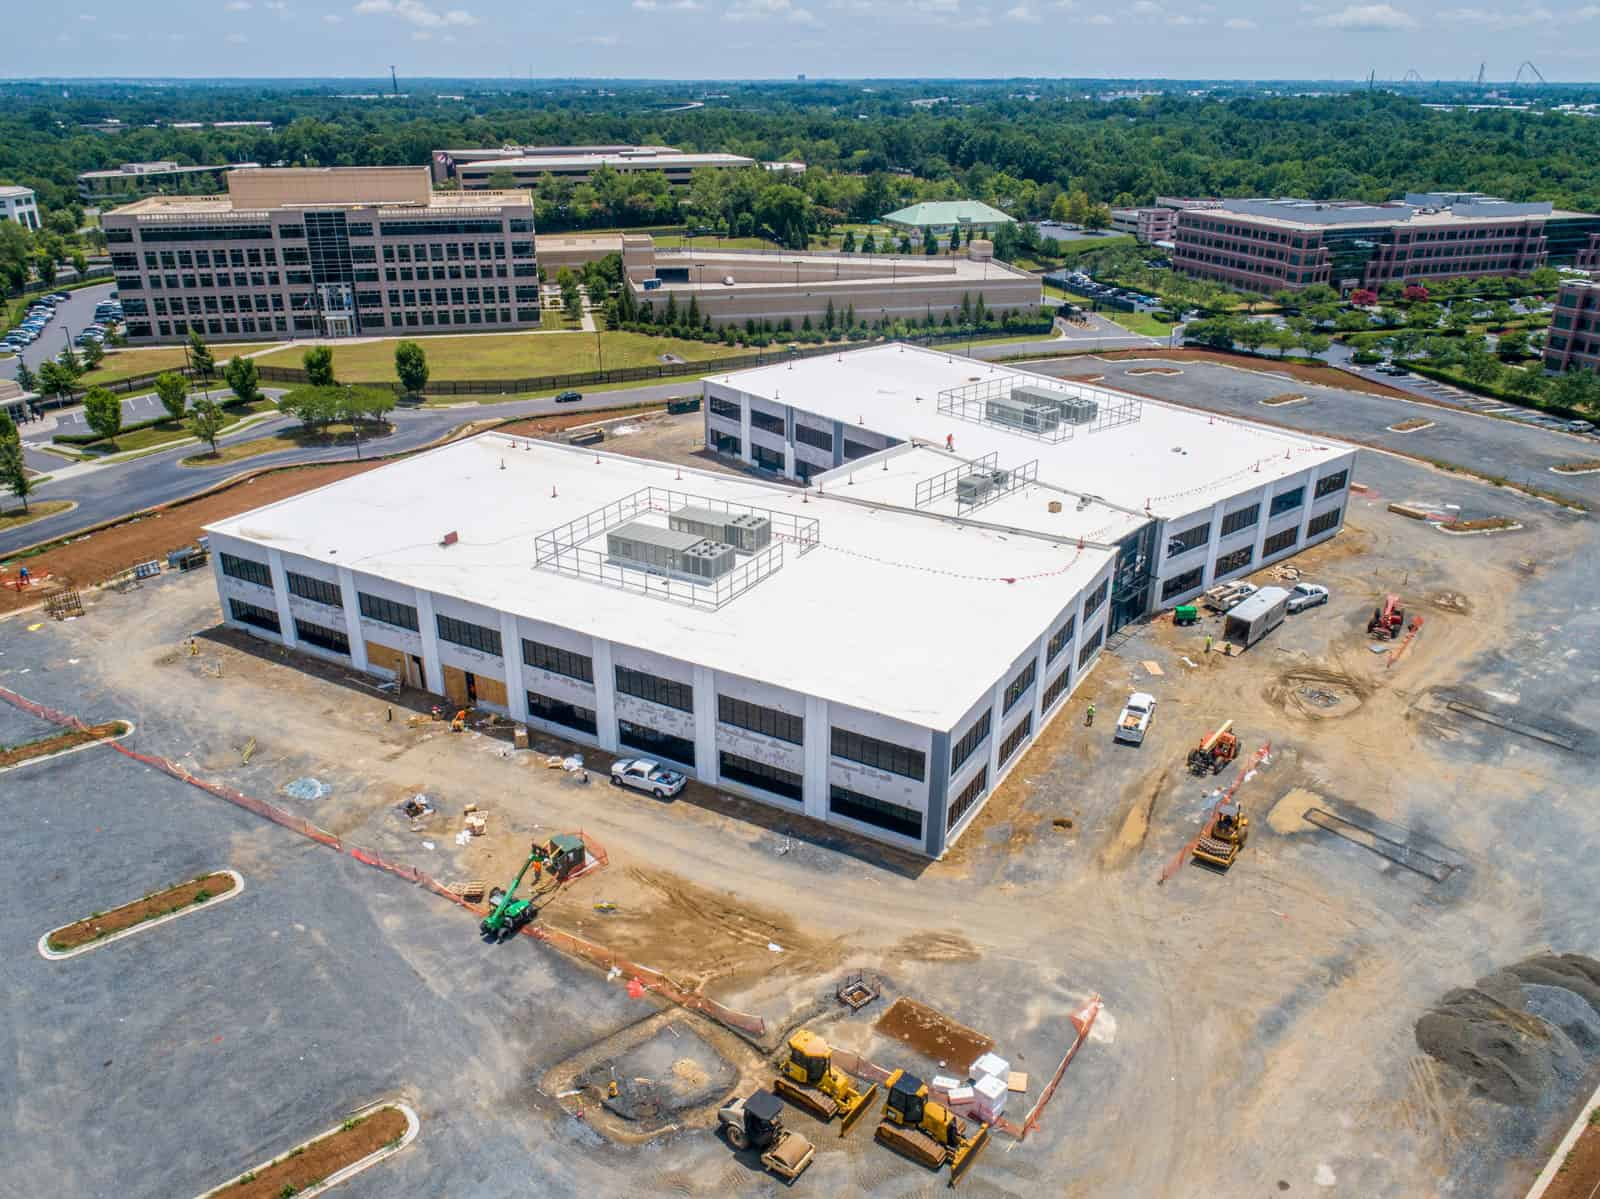 drone photo of construction project in North Carolina with completed buildings